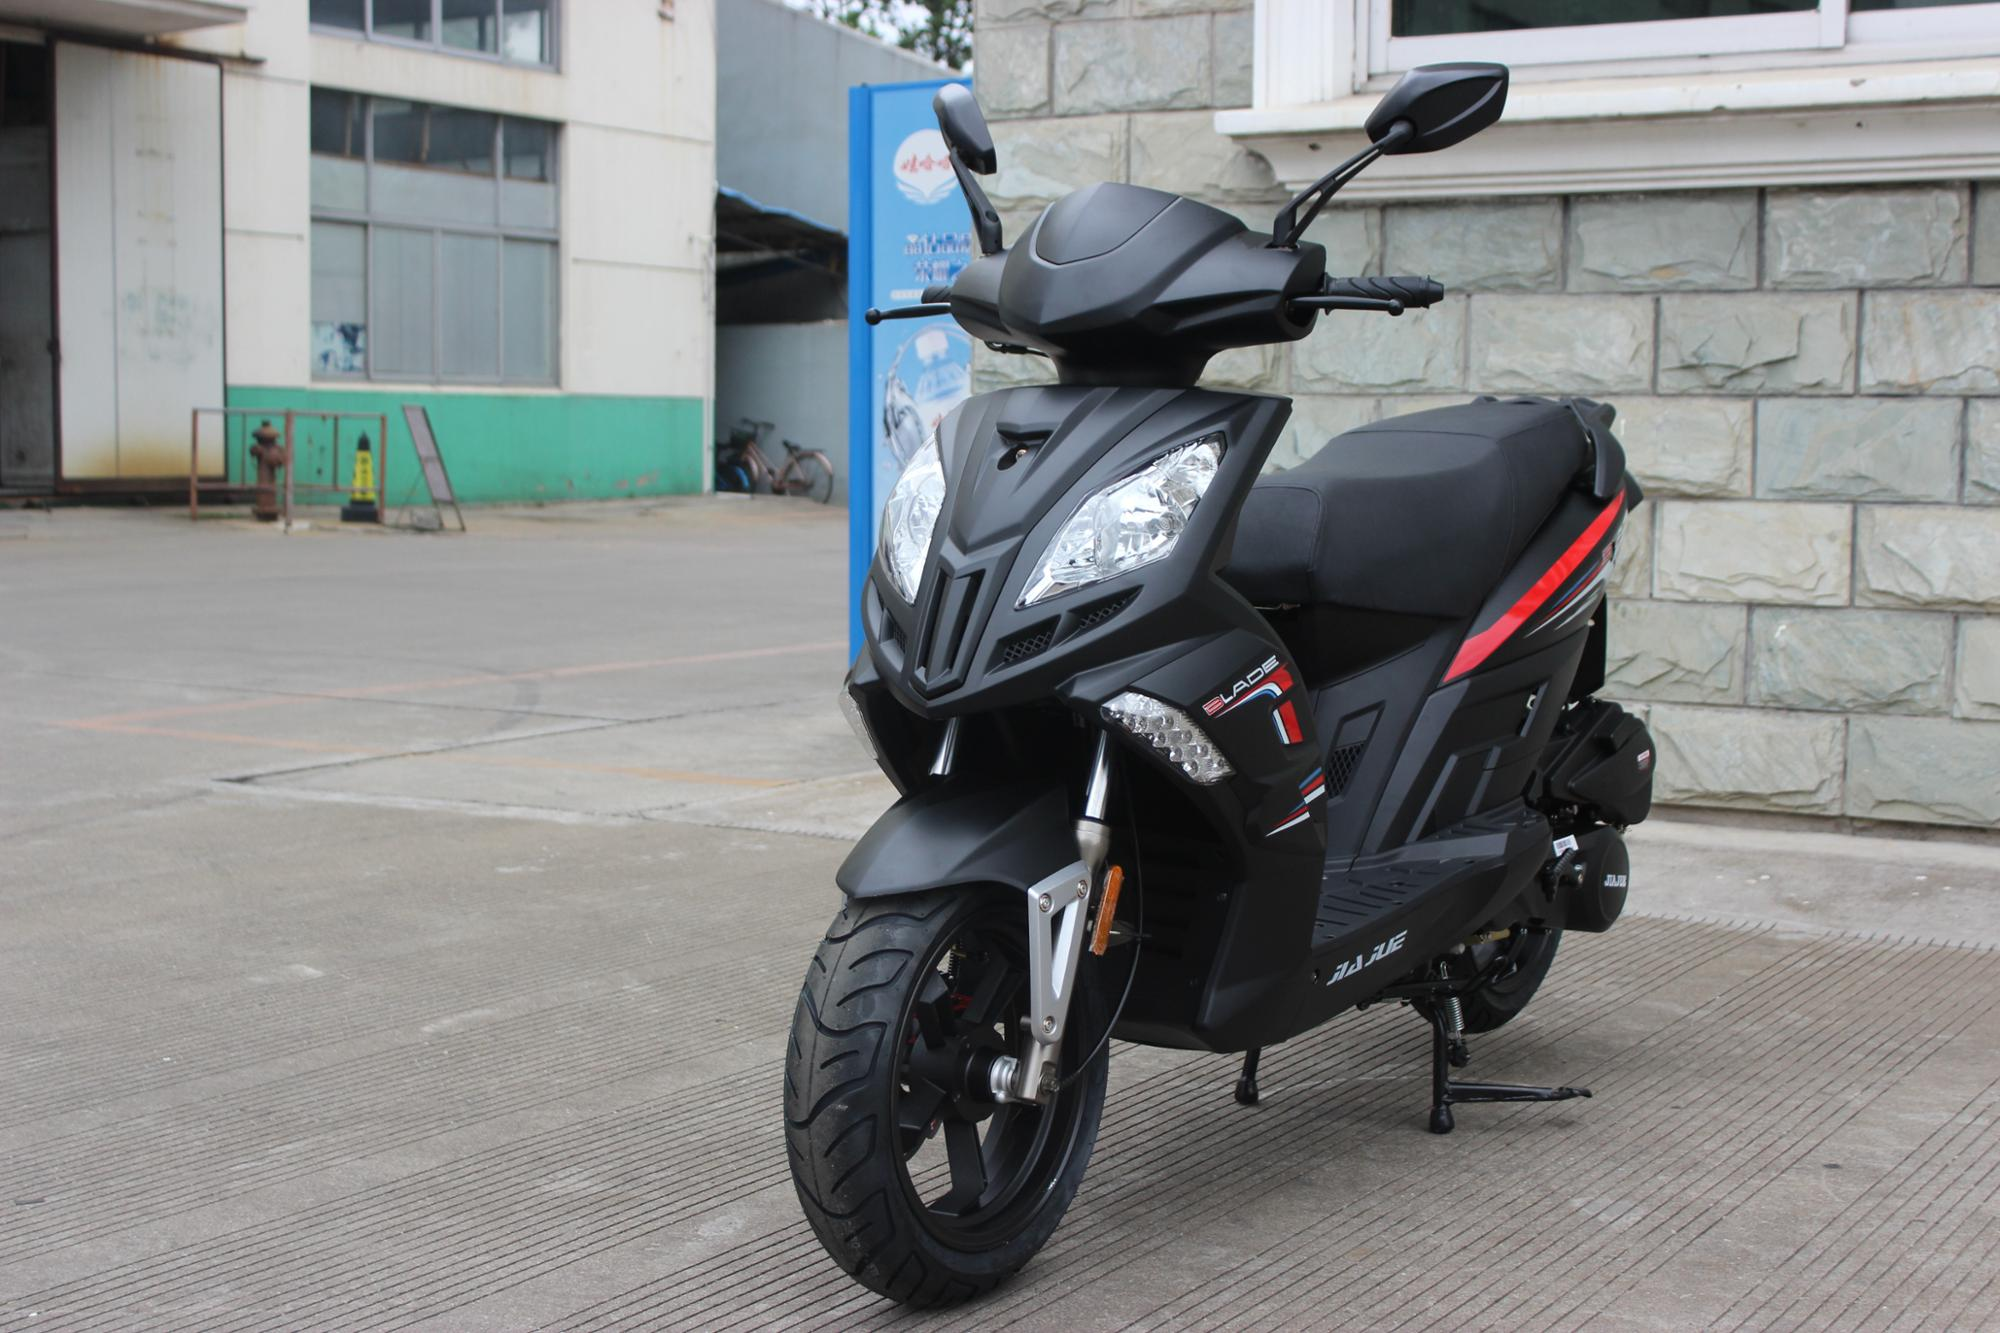 Jiajue 150cc patent design Air cooled GY 7 power gasoline scooters.